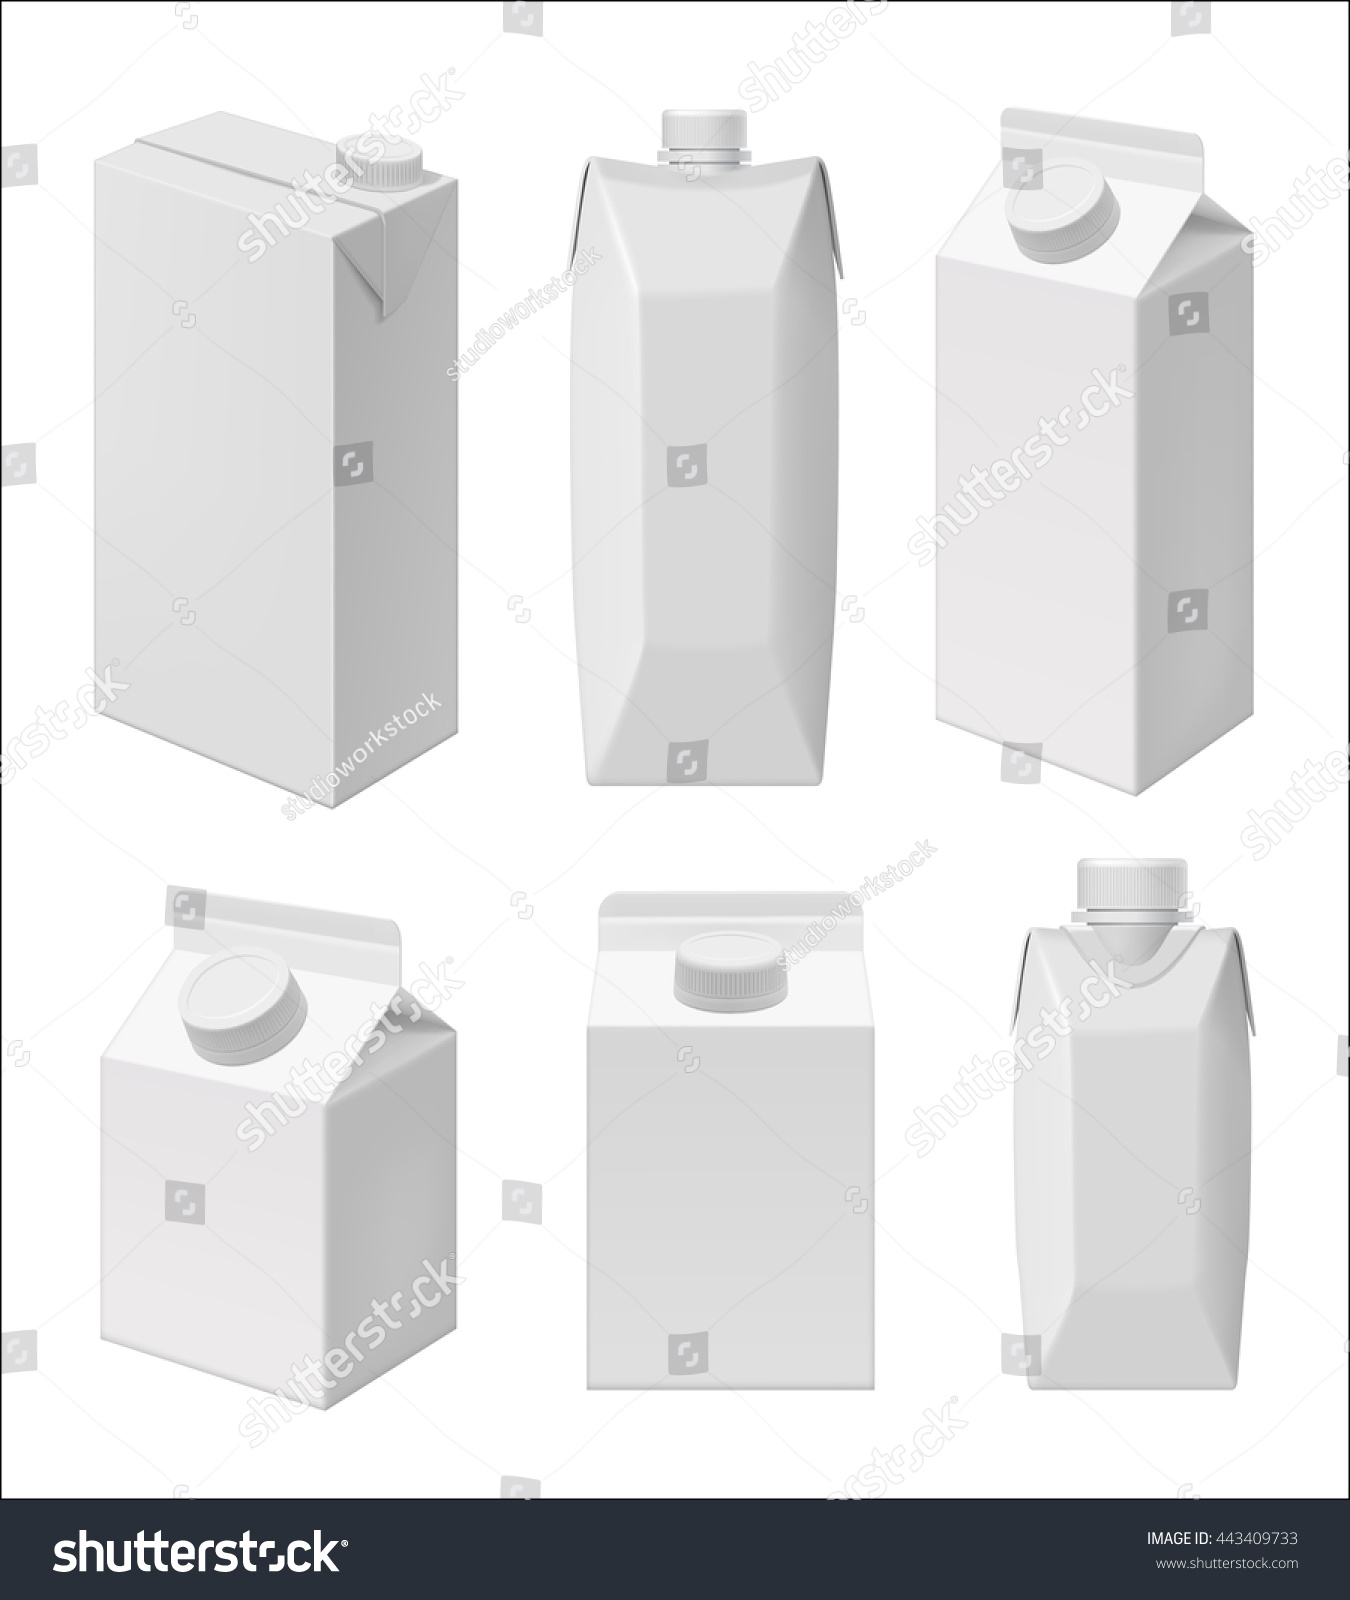 Carton Milk Or Juice Pack Template Blank Packaging Isolated On White Background Mock Up